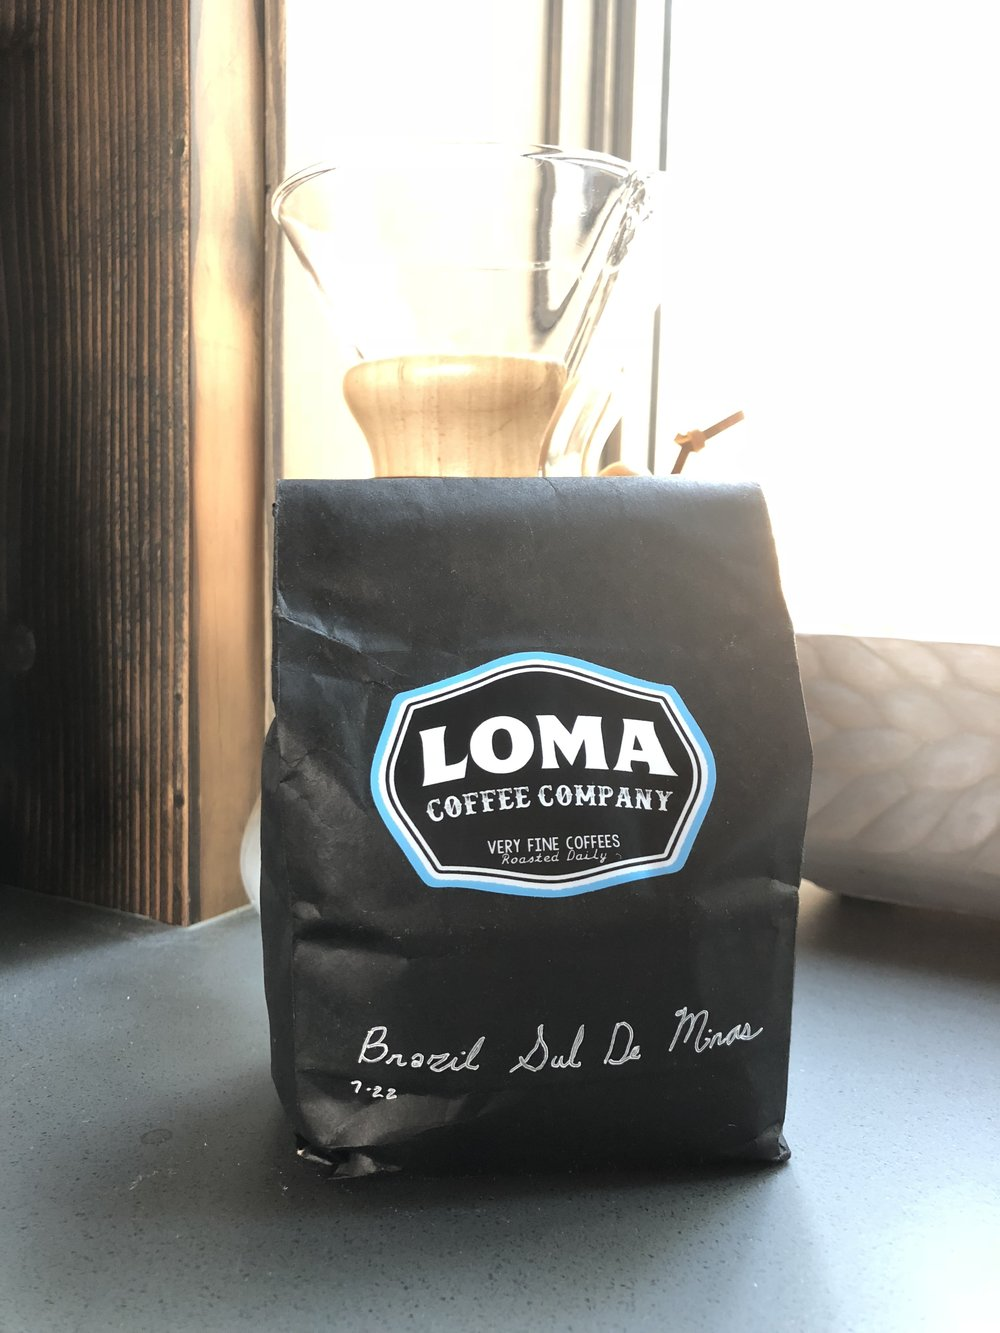 Now Serving LOMA COFFEE COMPANY very fine coffees!